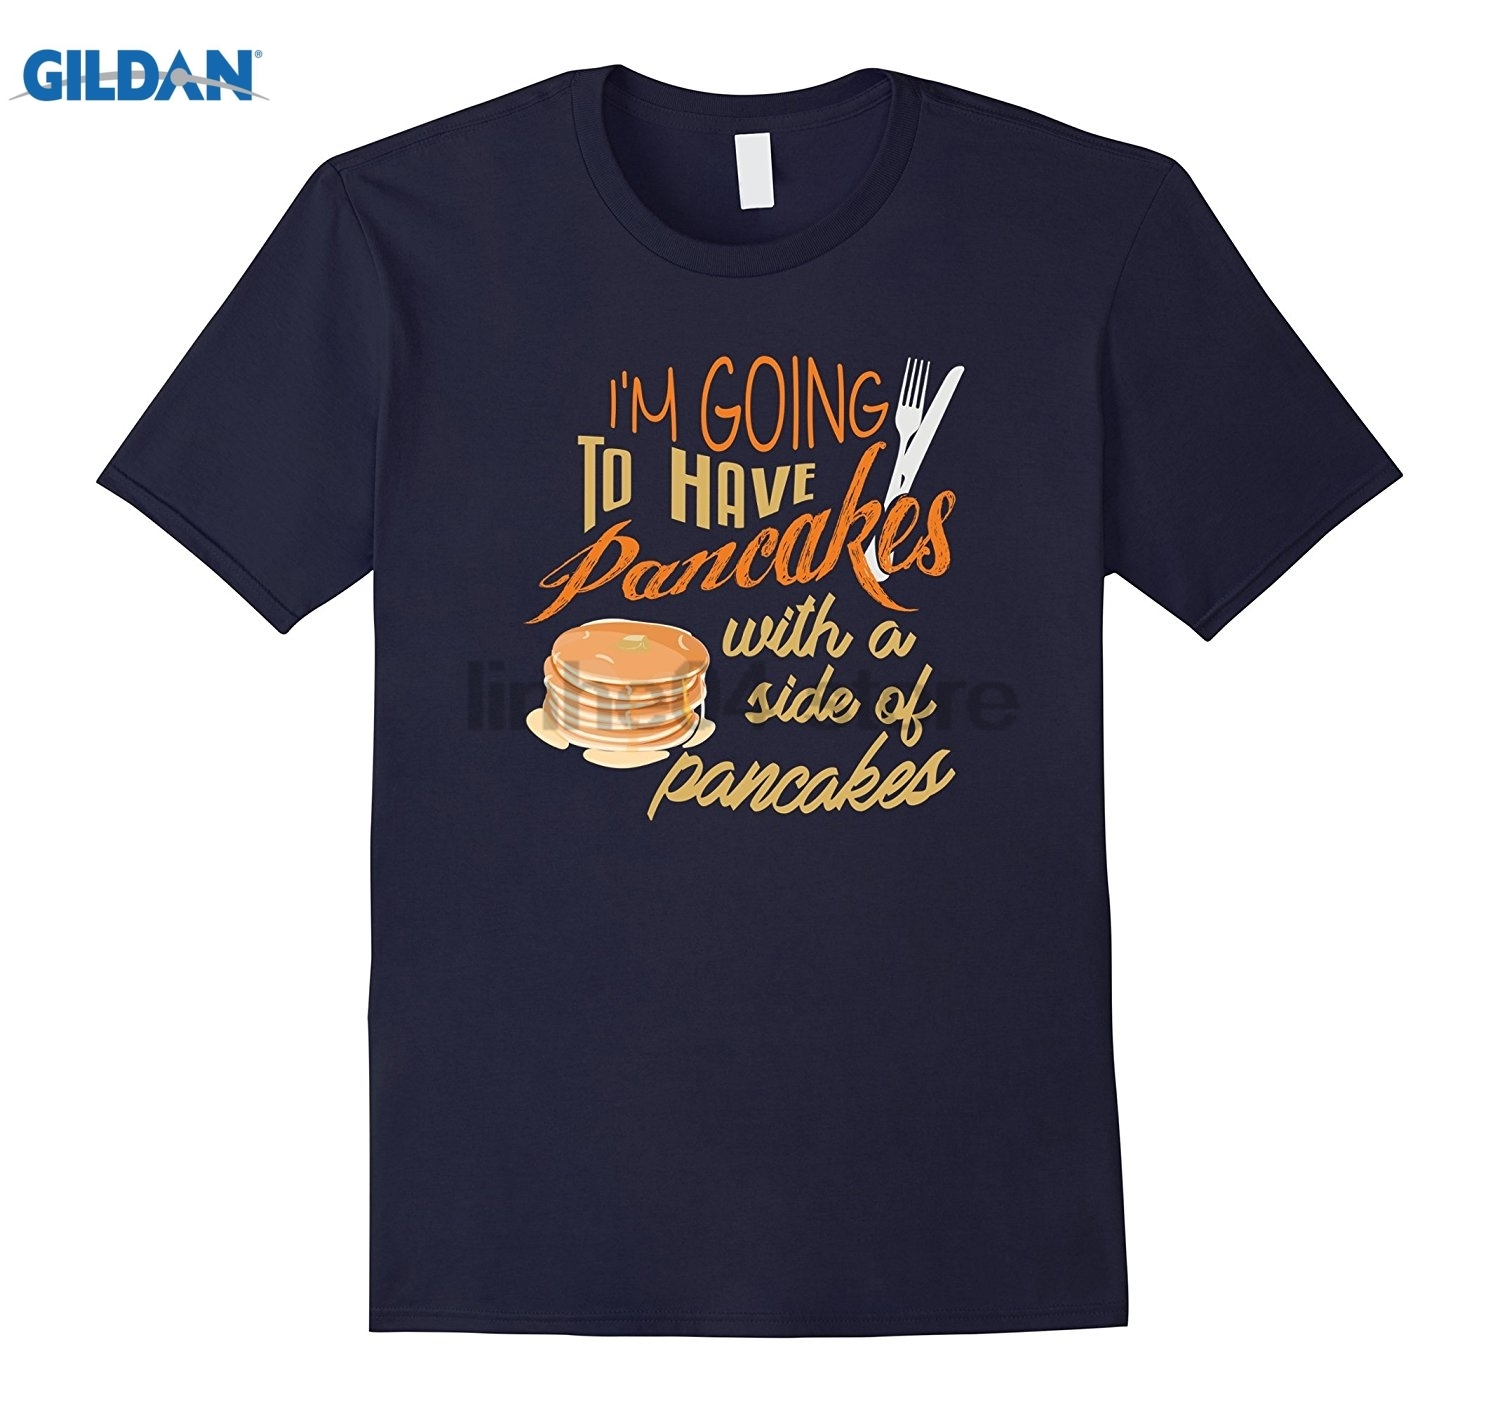 GILDAN Im Going To Have Pancakes With a Side of Pancakes T-Shirt Mothers Day Ms. T-shirt